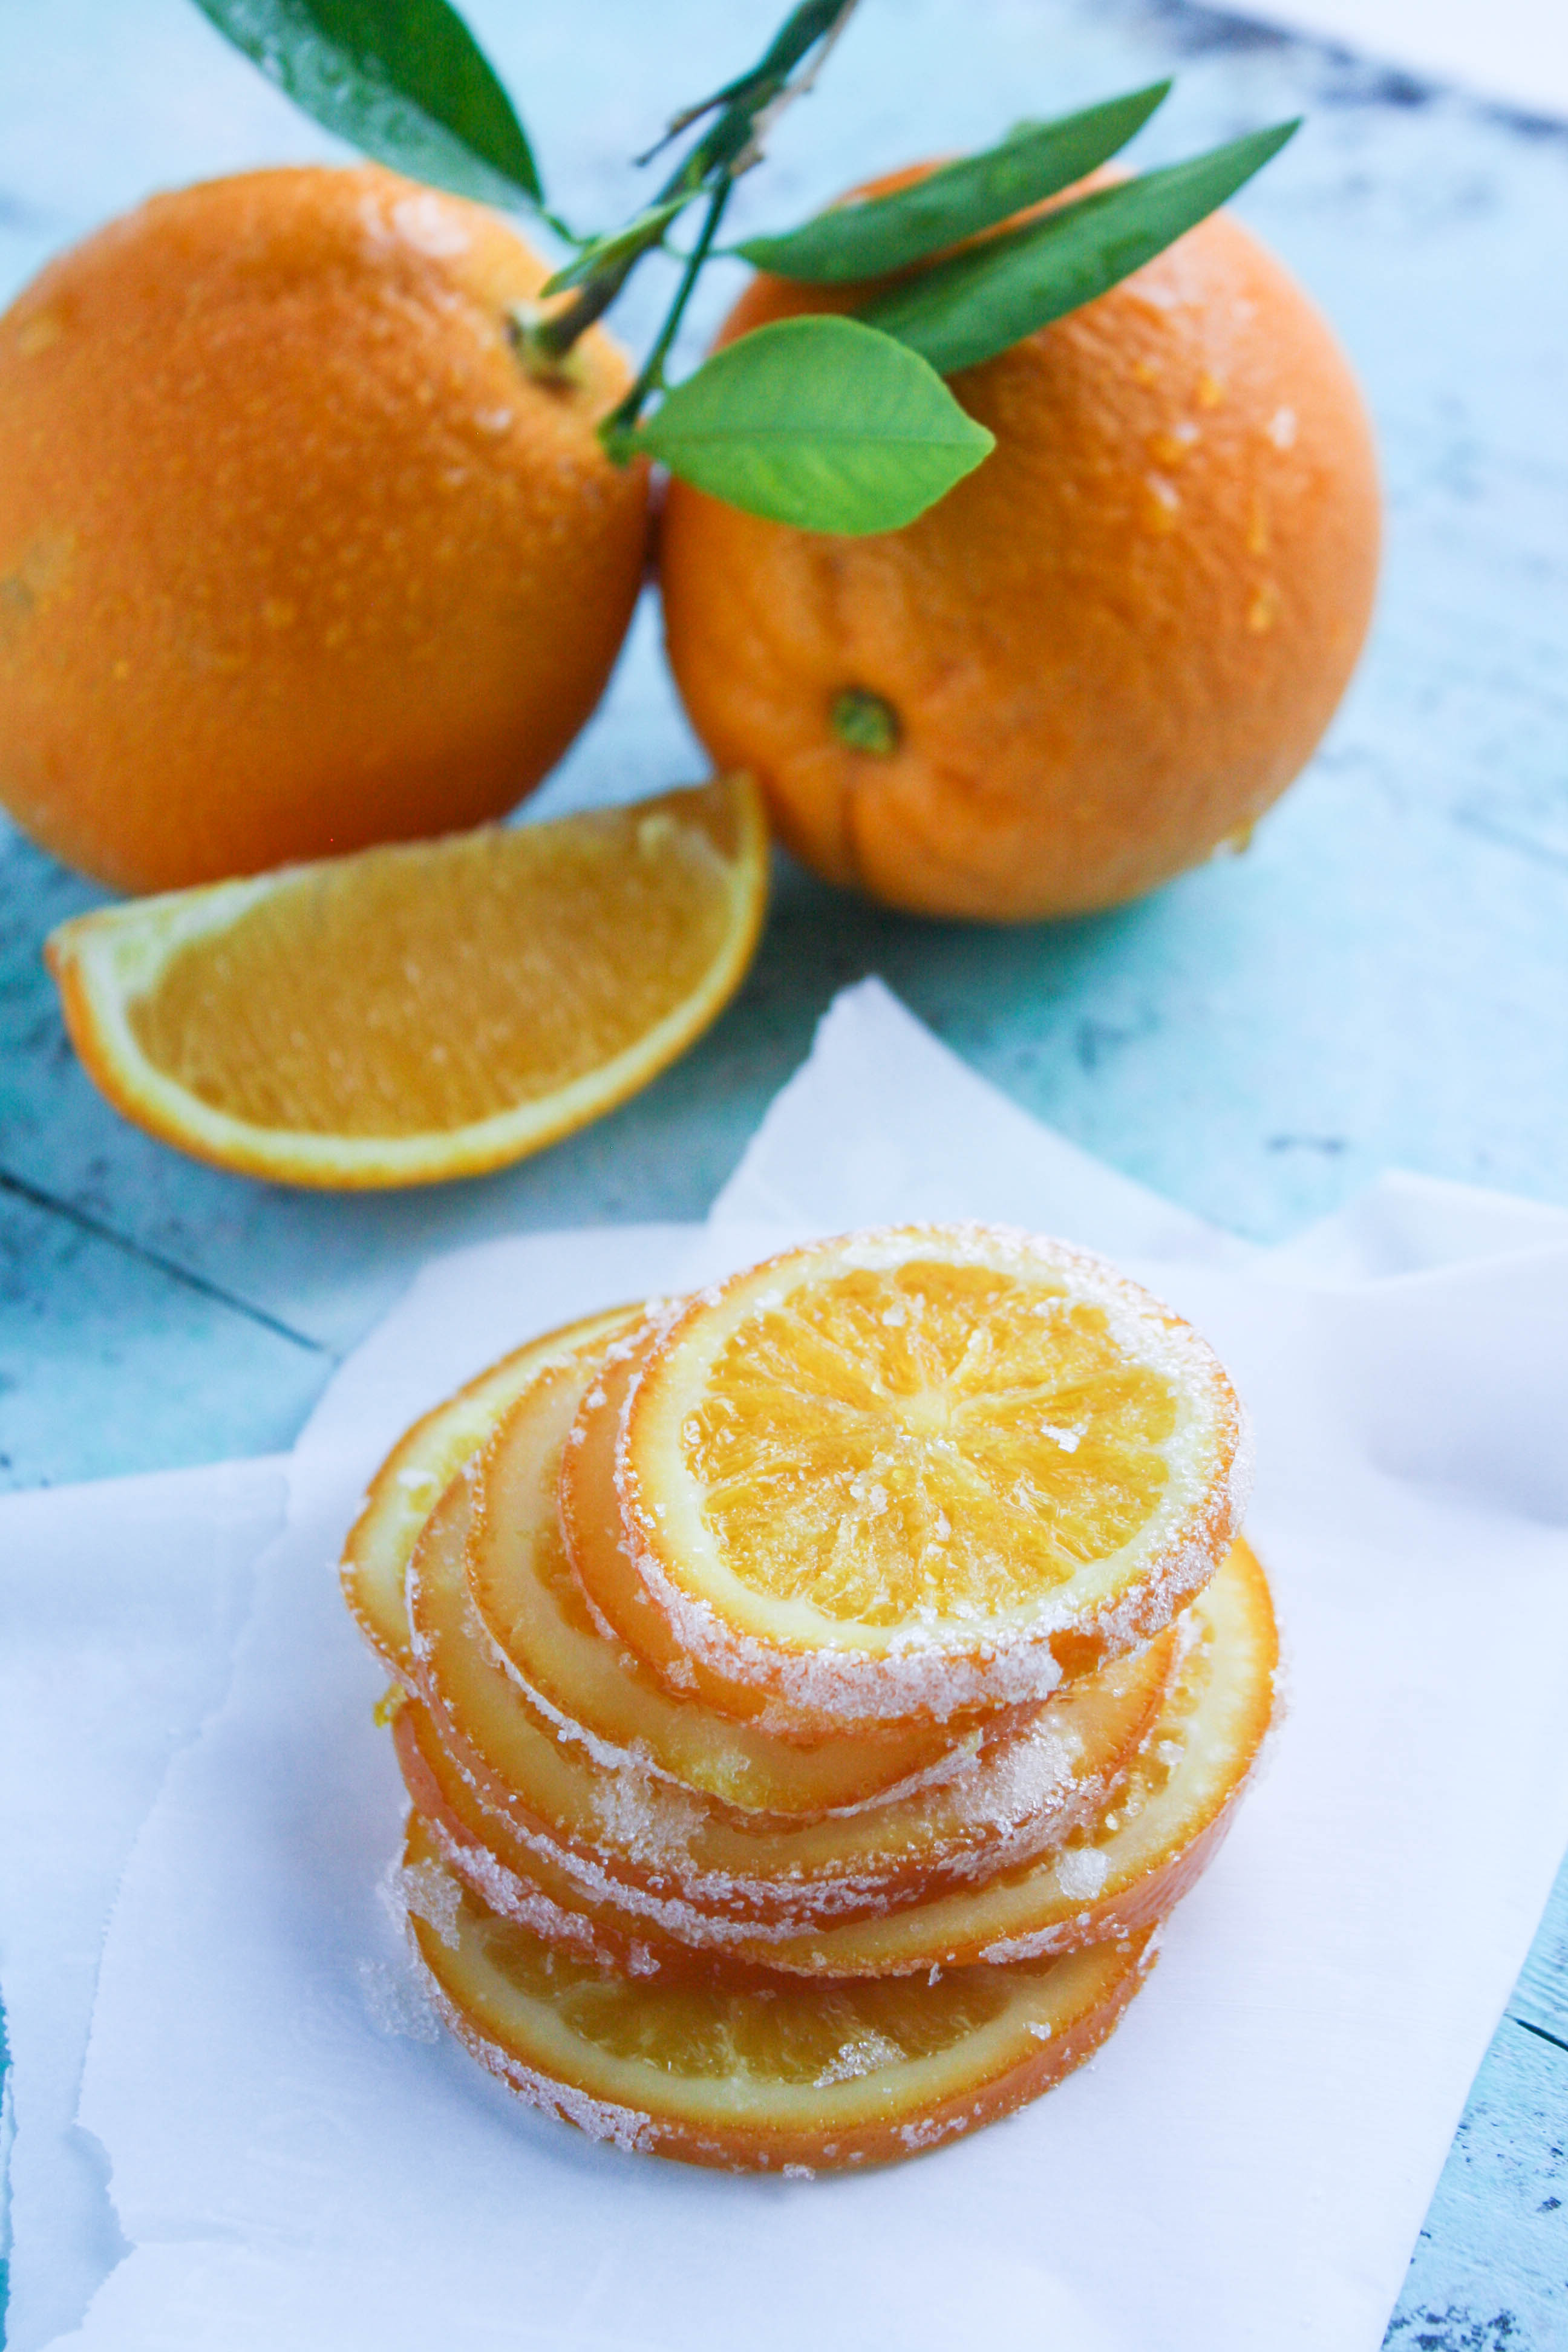 Candied Orange Slices are a fun and bright treat on a cold day! You'll love these orange treats any time of the day.